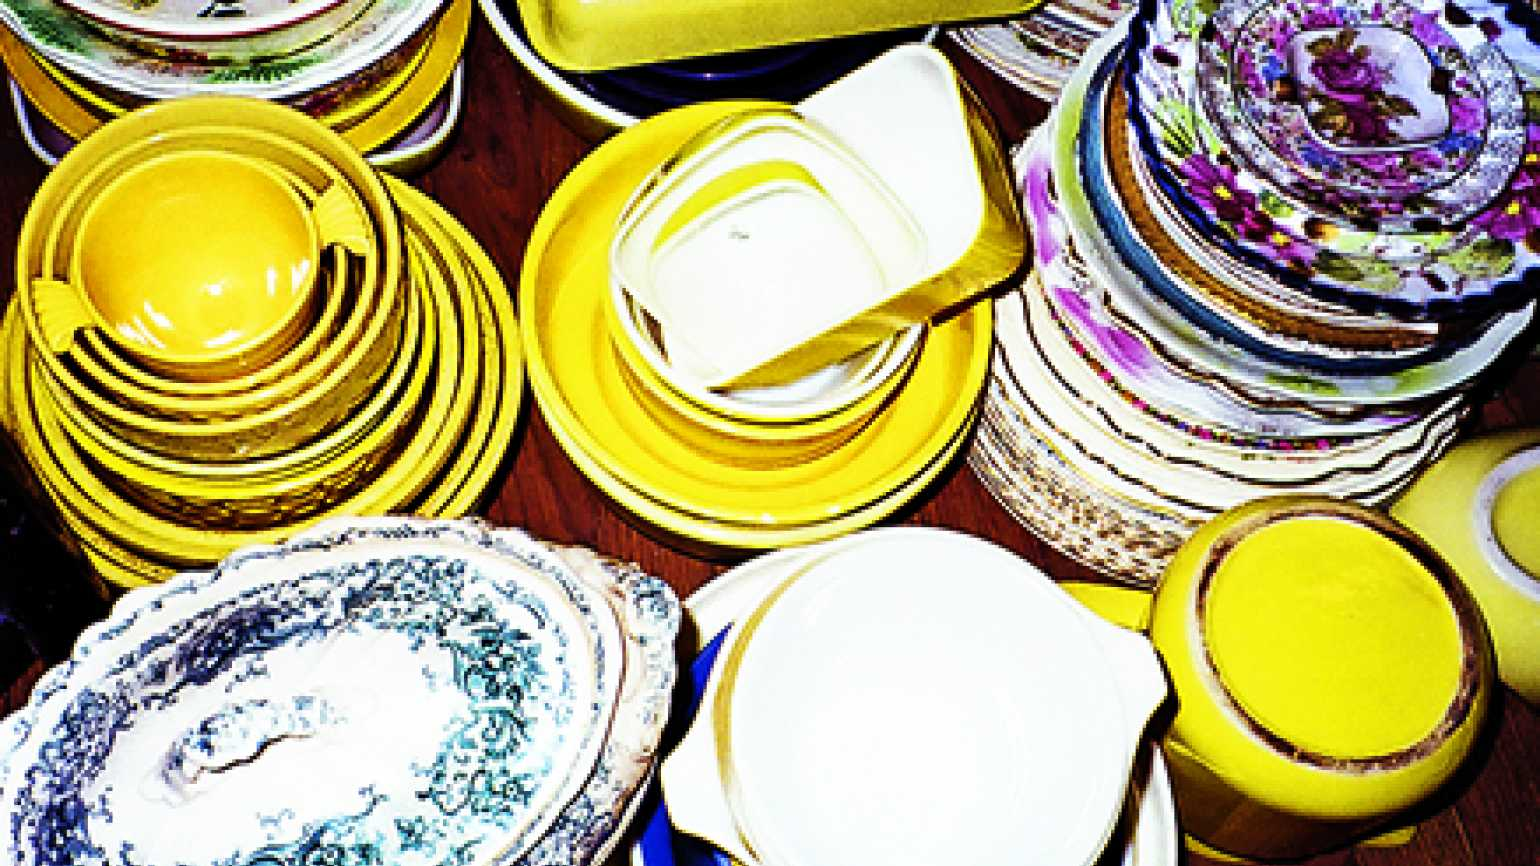 Jessie's vintage plates and saucers